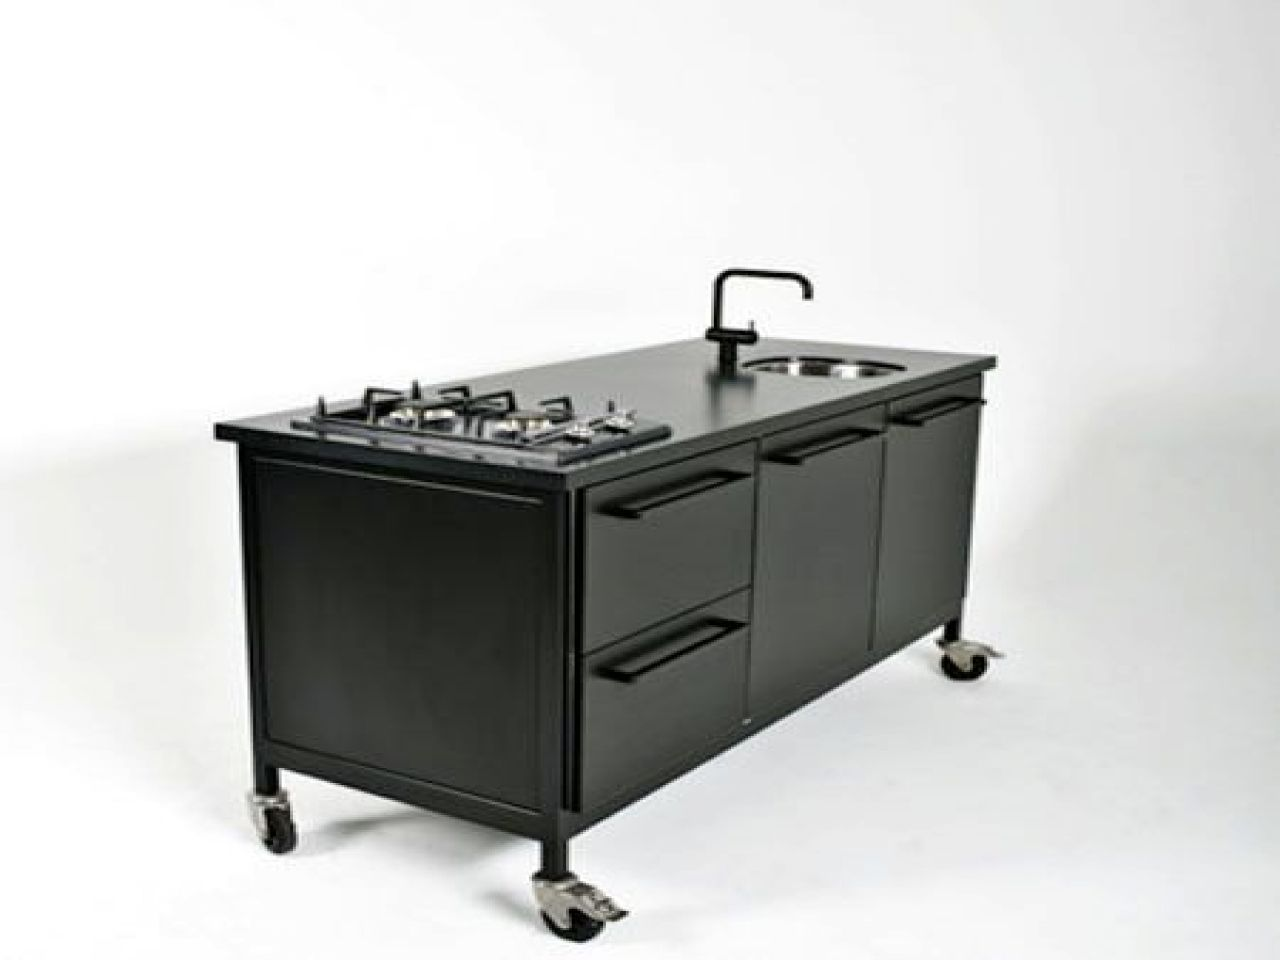 12 charming steel kitchen cabinet portable for your home decor arrangement ideas for steel kitch on outdoor kitchen on wheels id=99864